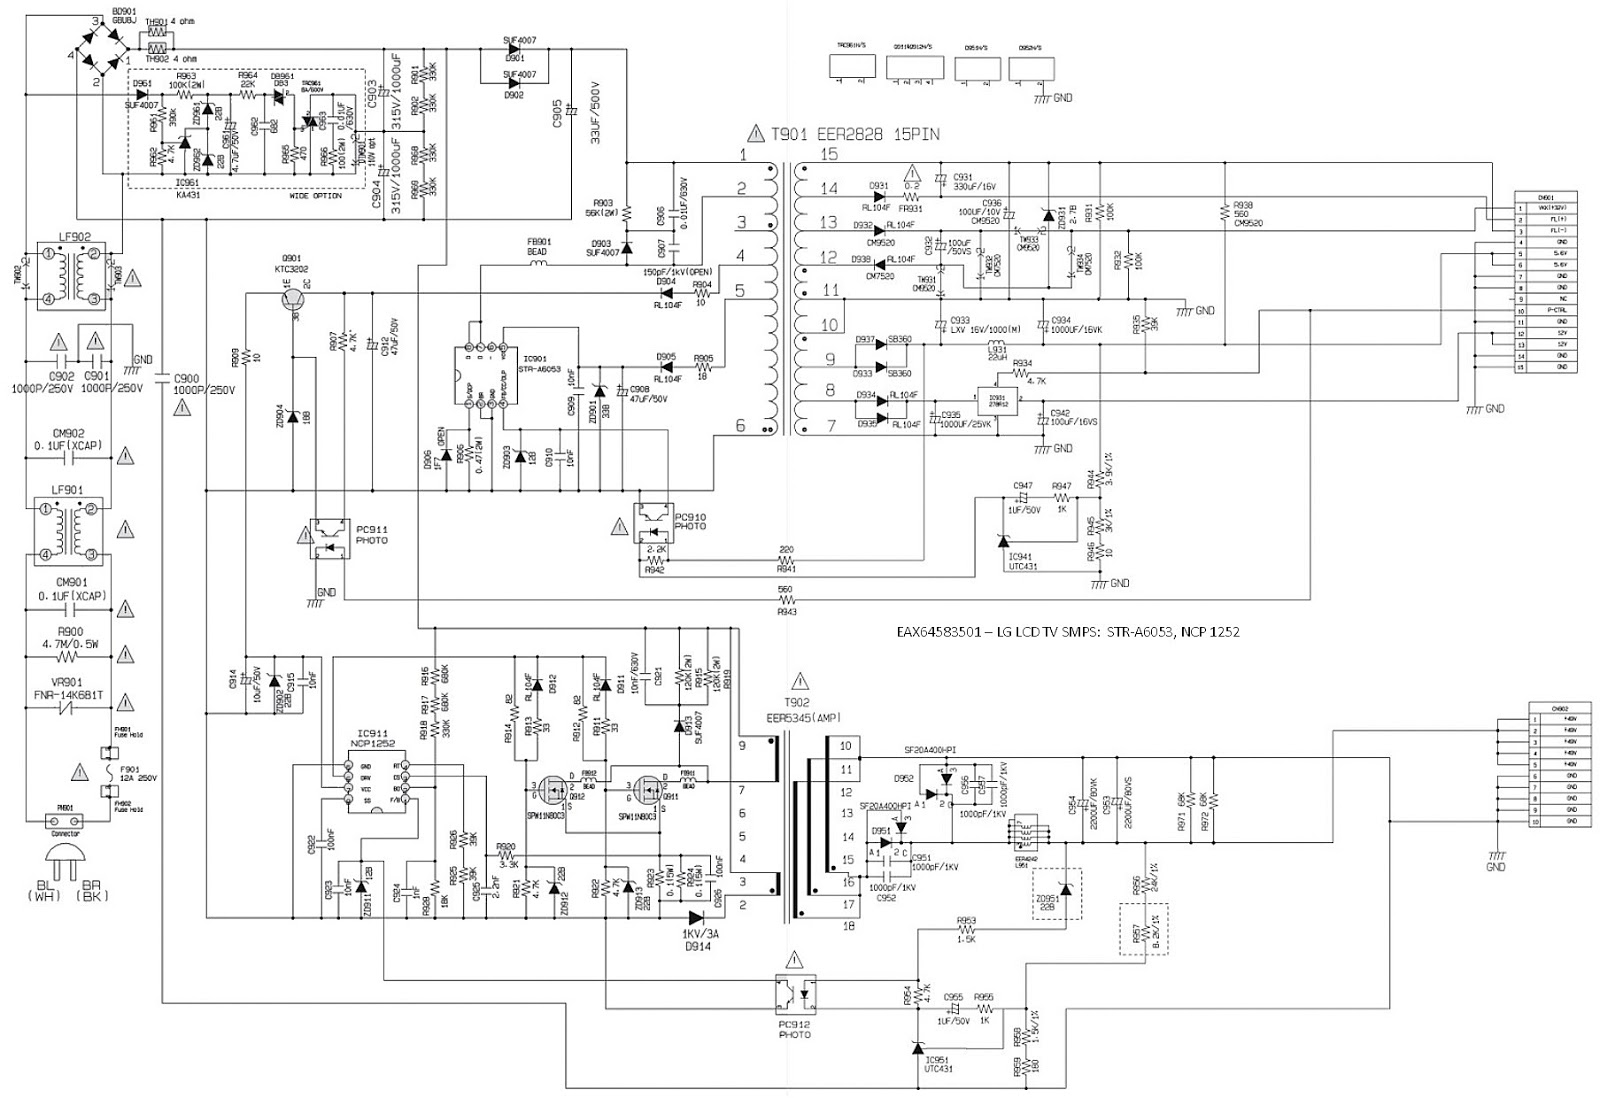 hight resolution of eax64583501 lg lcd tv smps schematic schematic diagrams lg led tv smps circuit diagram lg led